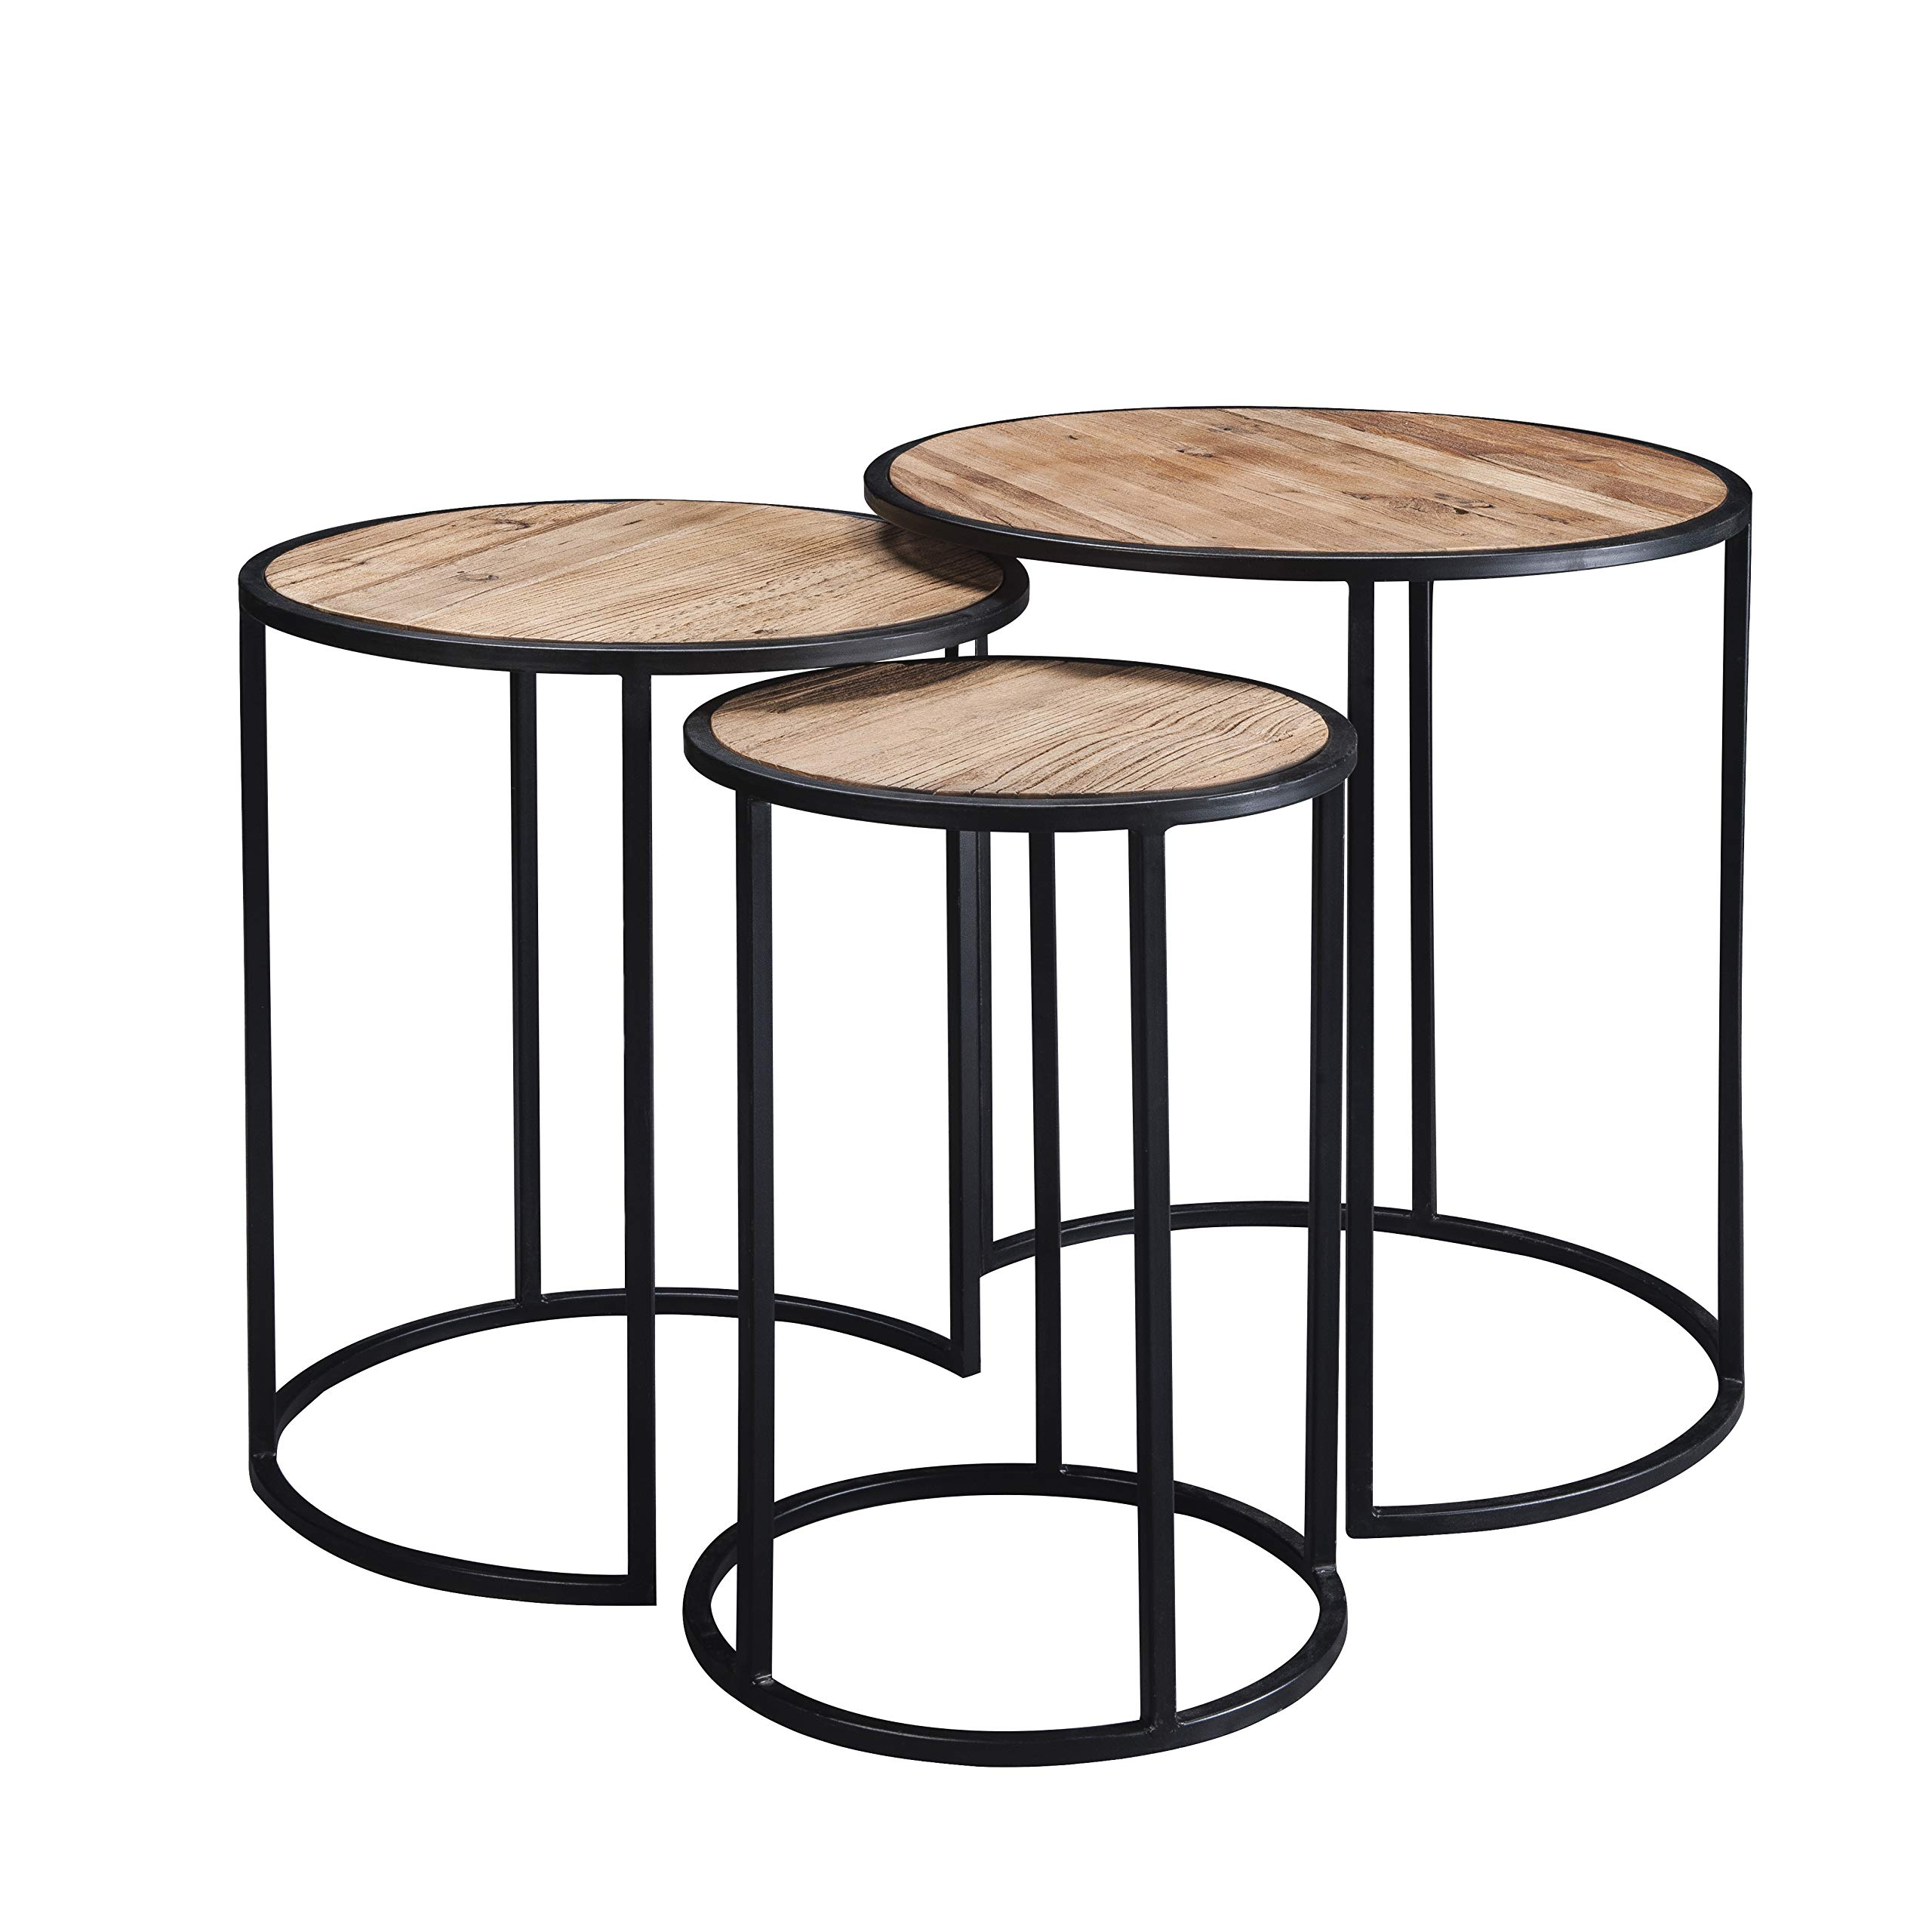 Knocbel 3-Piece Nesting Round Coffee Table Sets Living Room Side End Table with Wood Tabletop & Metal Frame (Wood) by Knocbel